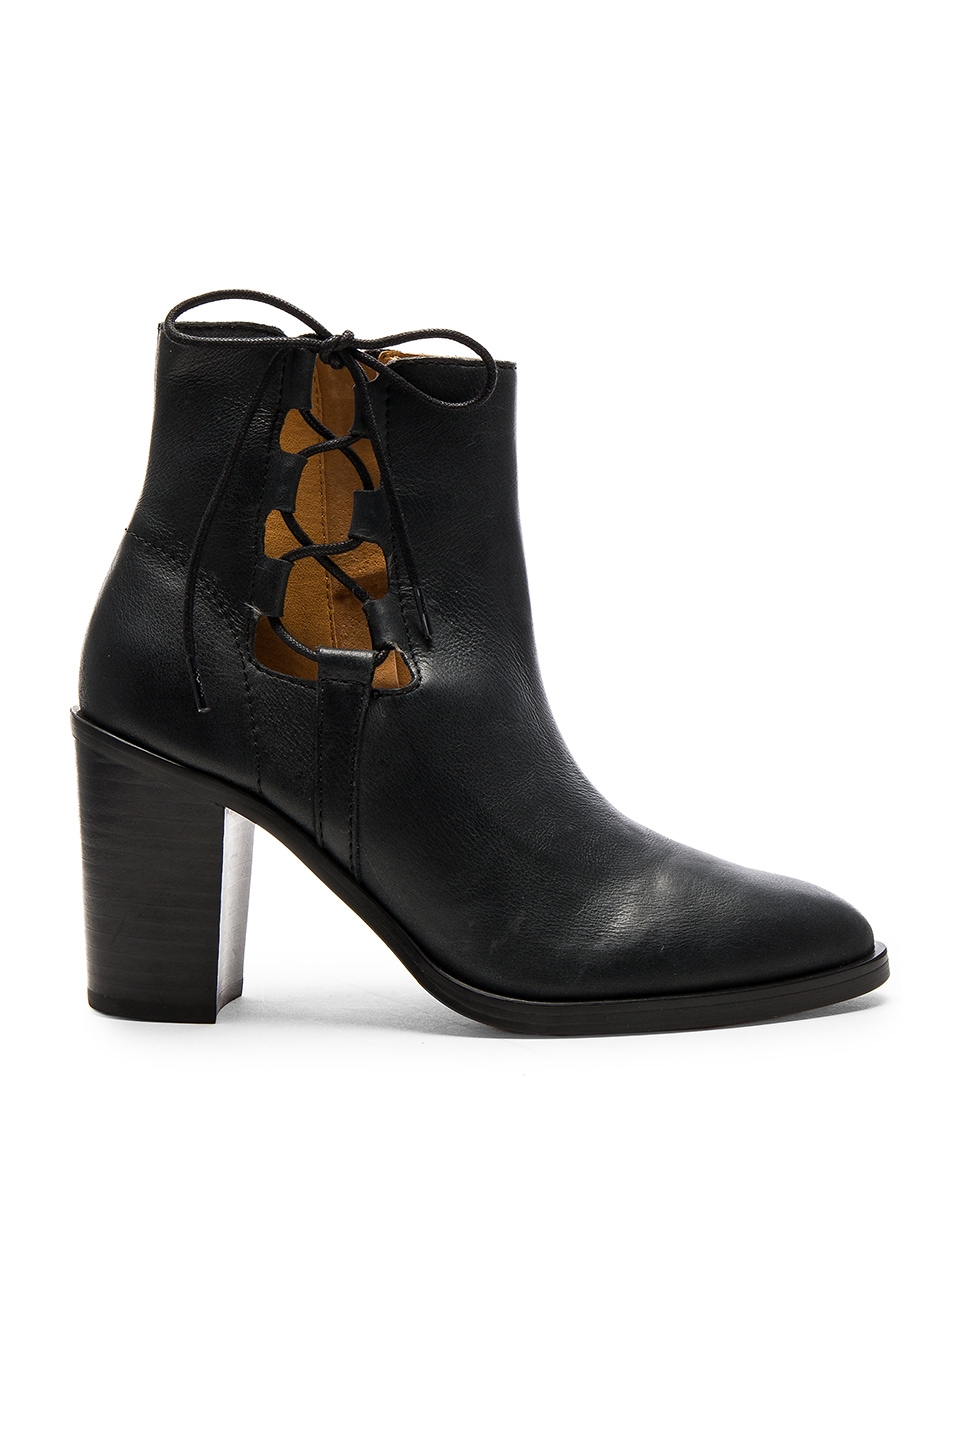 Latigo Jace Booties in Black